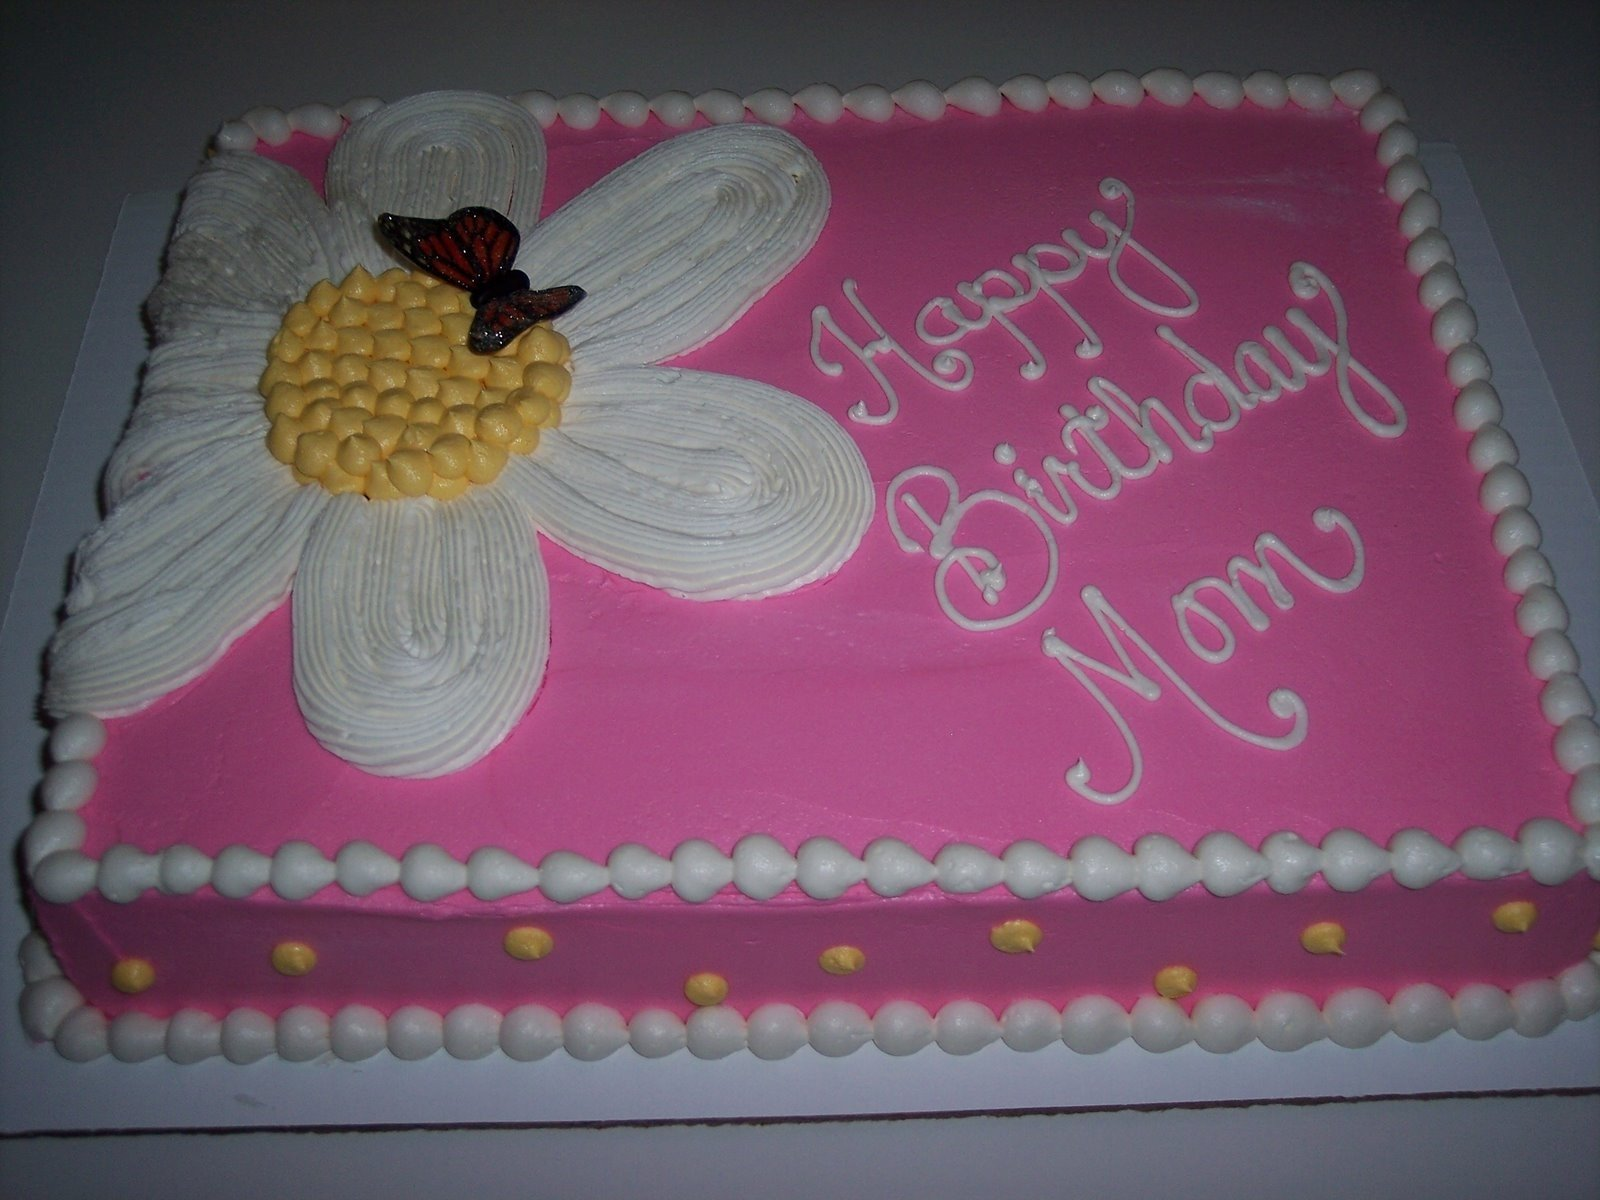 10 Gorgeous Birthday Cake Decorating Ideas For Adults adult birthday cakes cake decorating ideas pinterest adult 2020